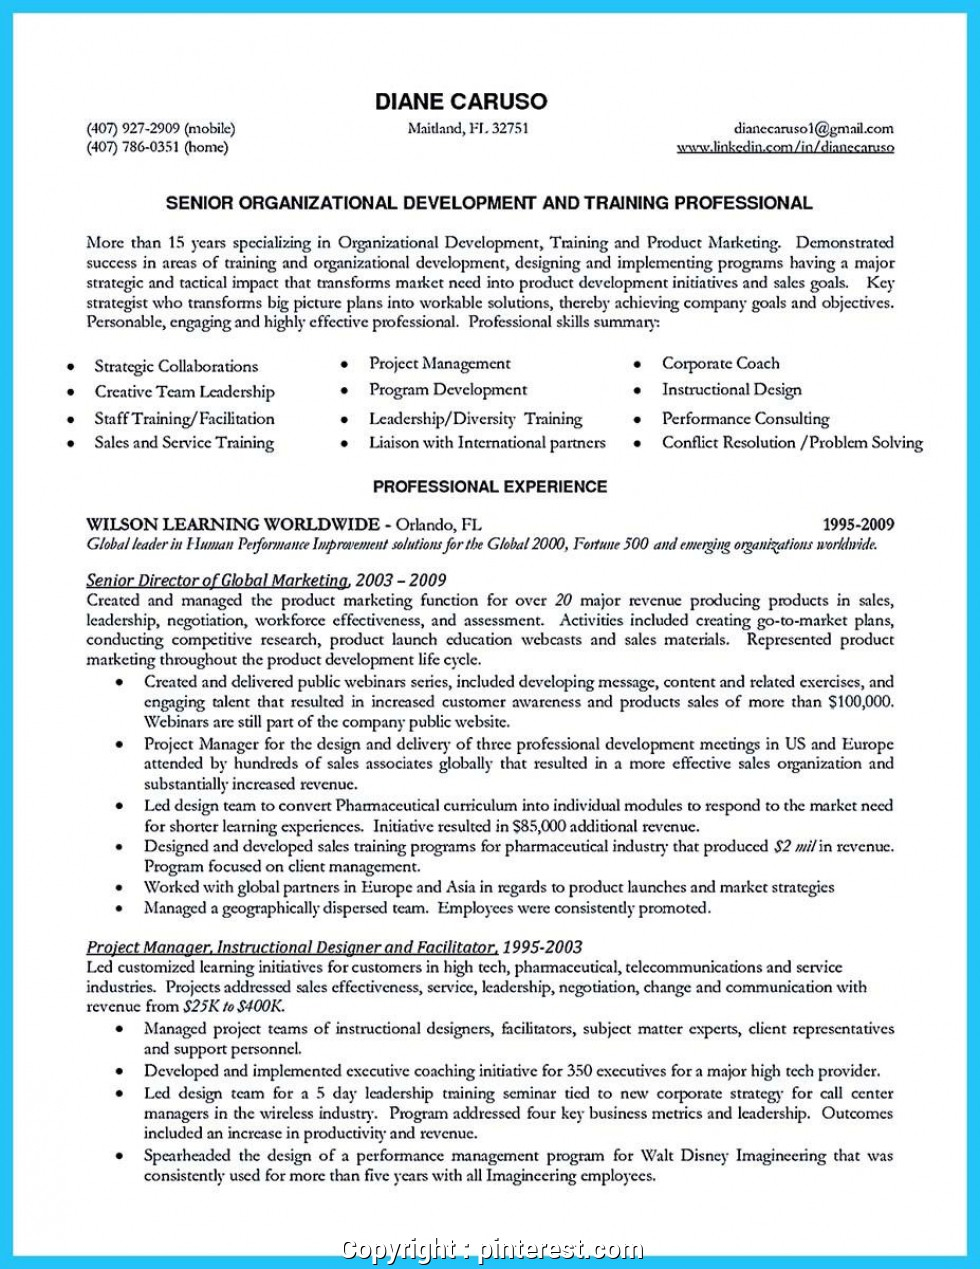 Resume Words Skills  Modern Business Development Skills Resume Awesome Best Words For The